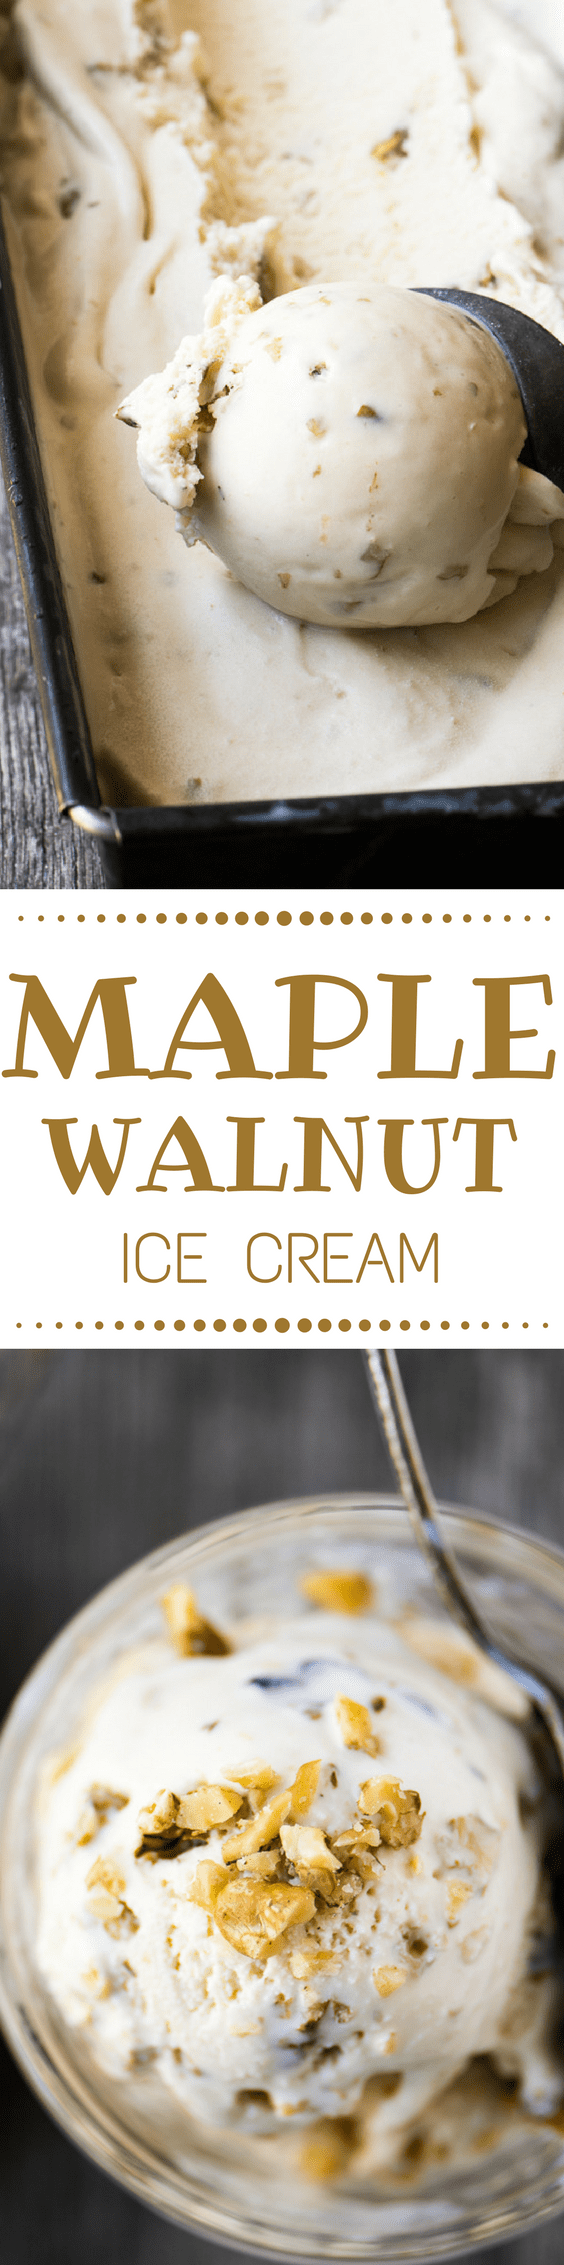 Maple Walnut Ice Cream has to be one of the great flavors of all time. This New England classic is sweetened with pure maple syrup, and loaded with crunchy toasted walnuts for a memorable, fall themed frozen treat.